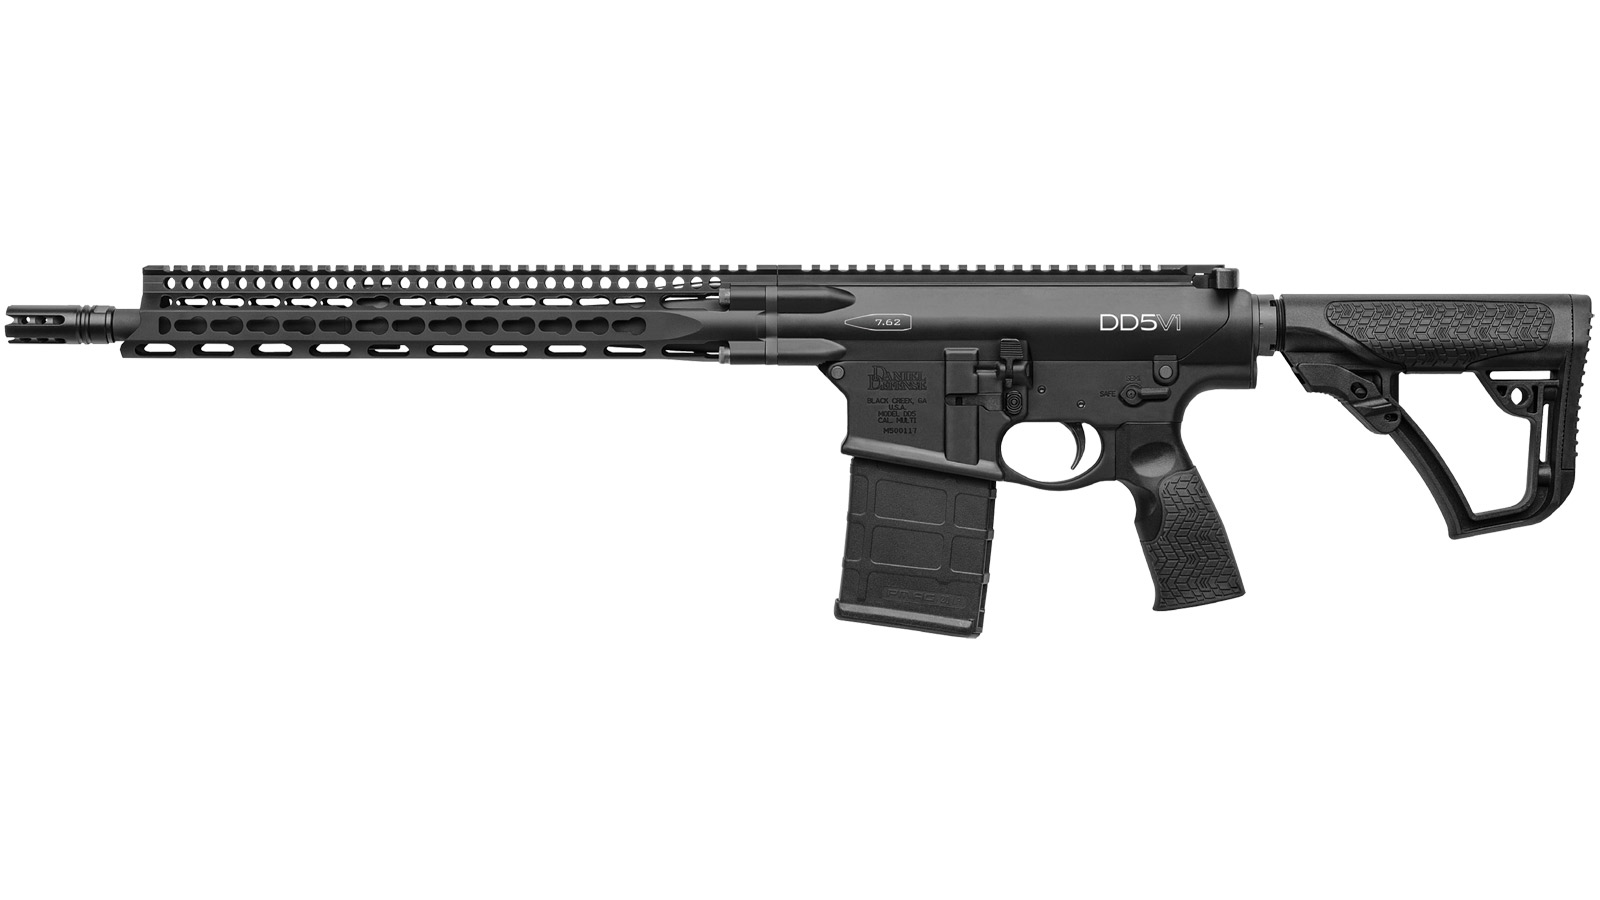 Daniel Defense 17029047 DD5 V1 Semi-Automatic 308 Win|7.62 NATO 16 20+1 6-Position Black Stk Black Hard Coat Anodized|Black Phosphate in.